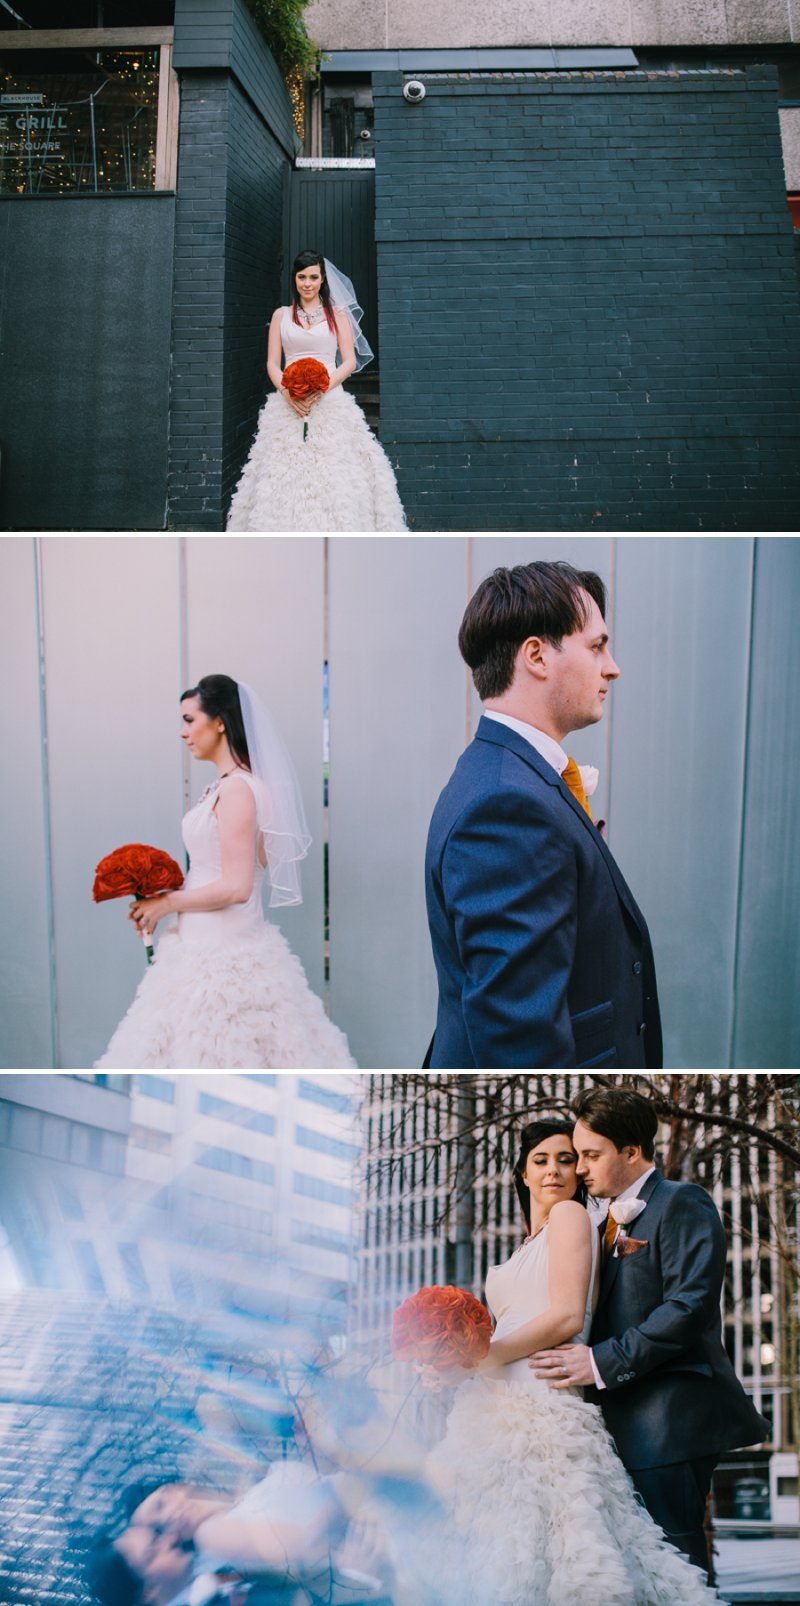 Contemporary Christmas Wedding At Aspire Leeds With Bride In Vivienne Westwood Pumps And A Statement J Crew Necklace With Groom In Ted Baker Suit And Bridesmaids In Brightly Coloured Lindy Bop Dresses Images From Chris Barber Photography 10